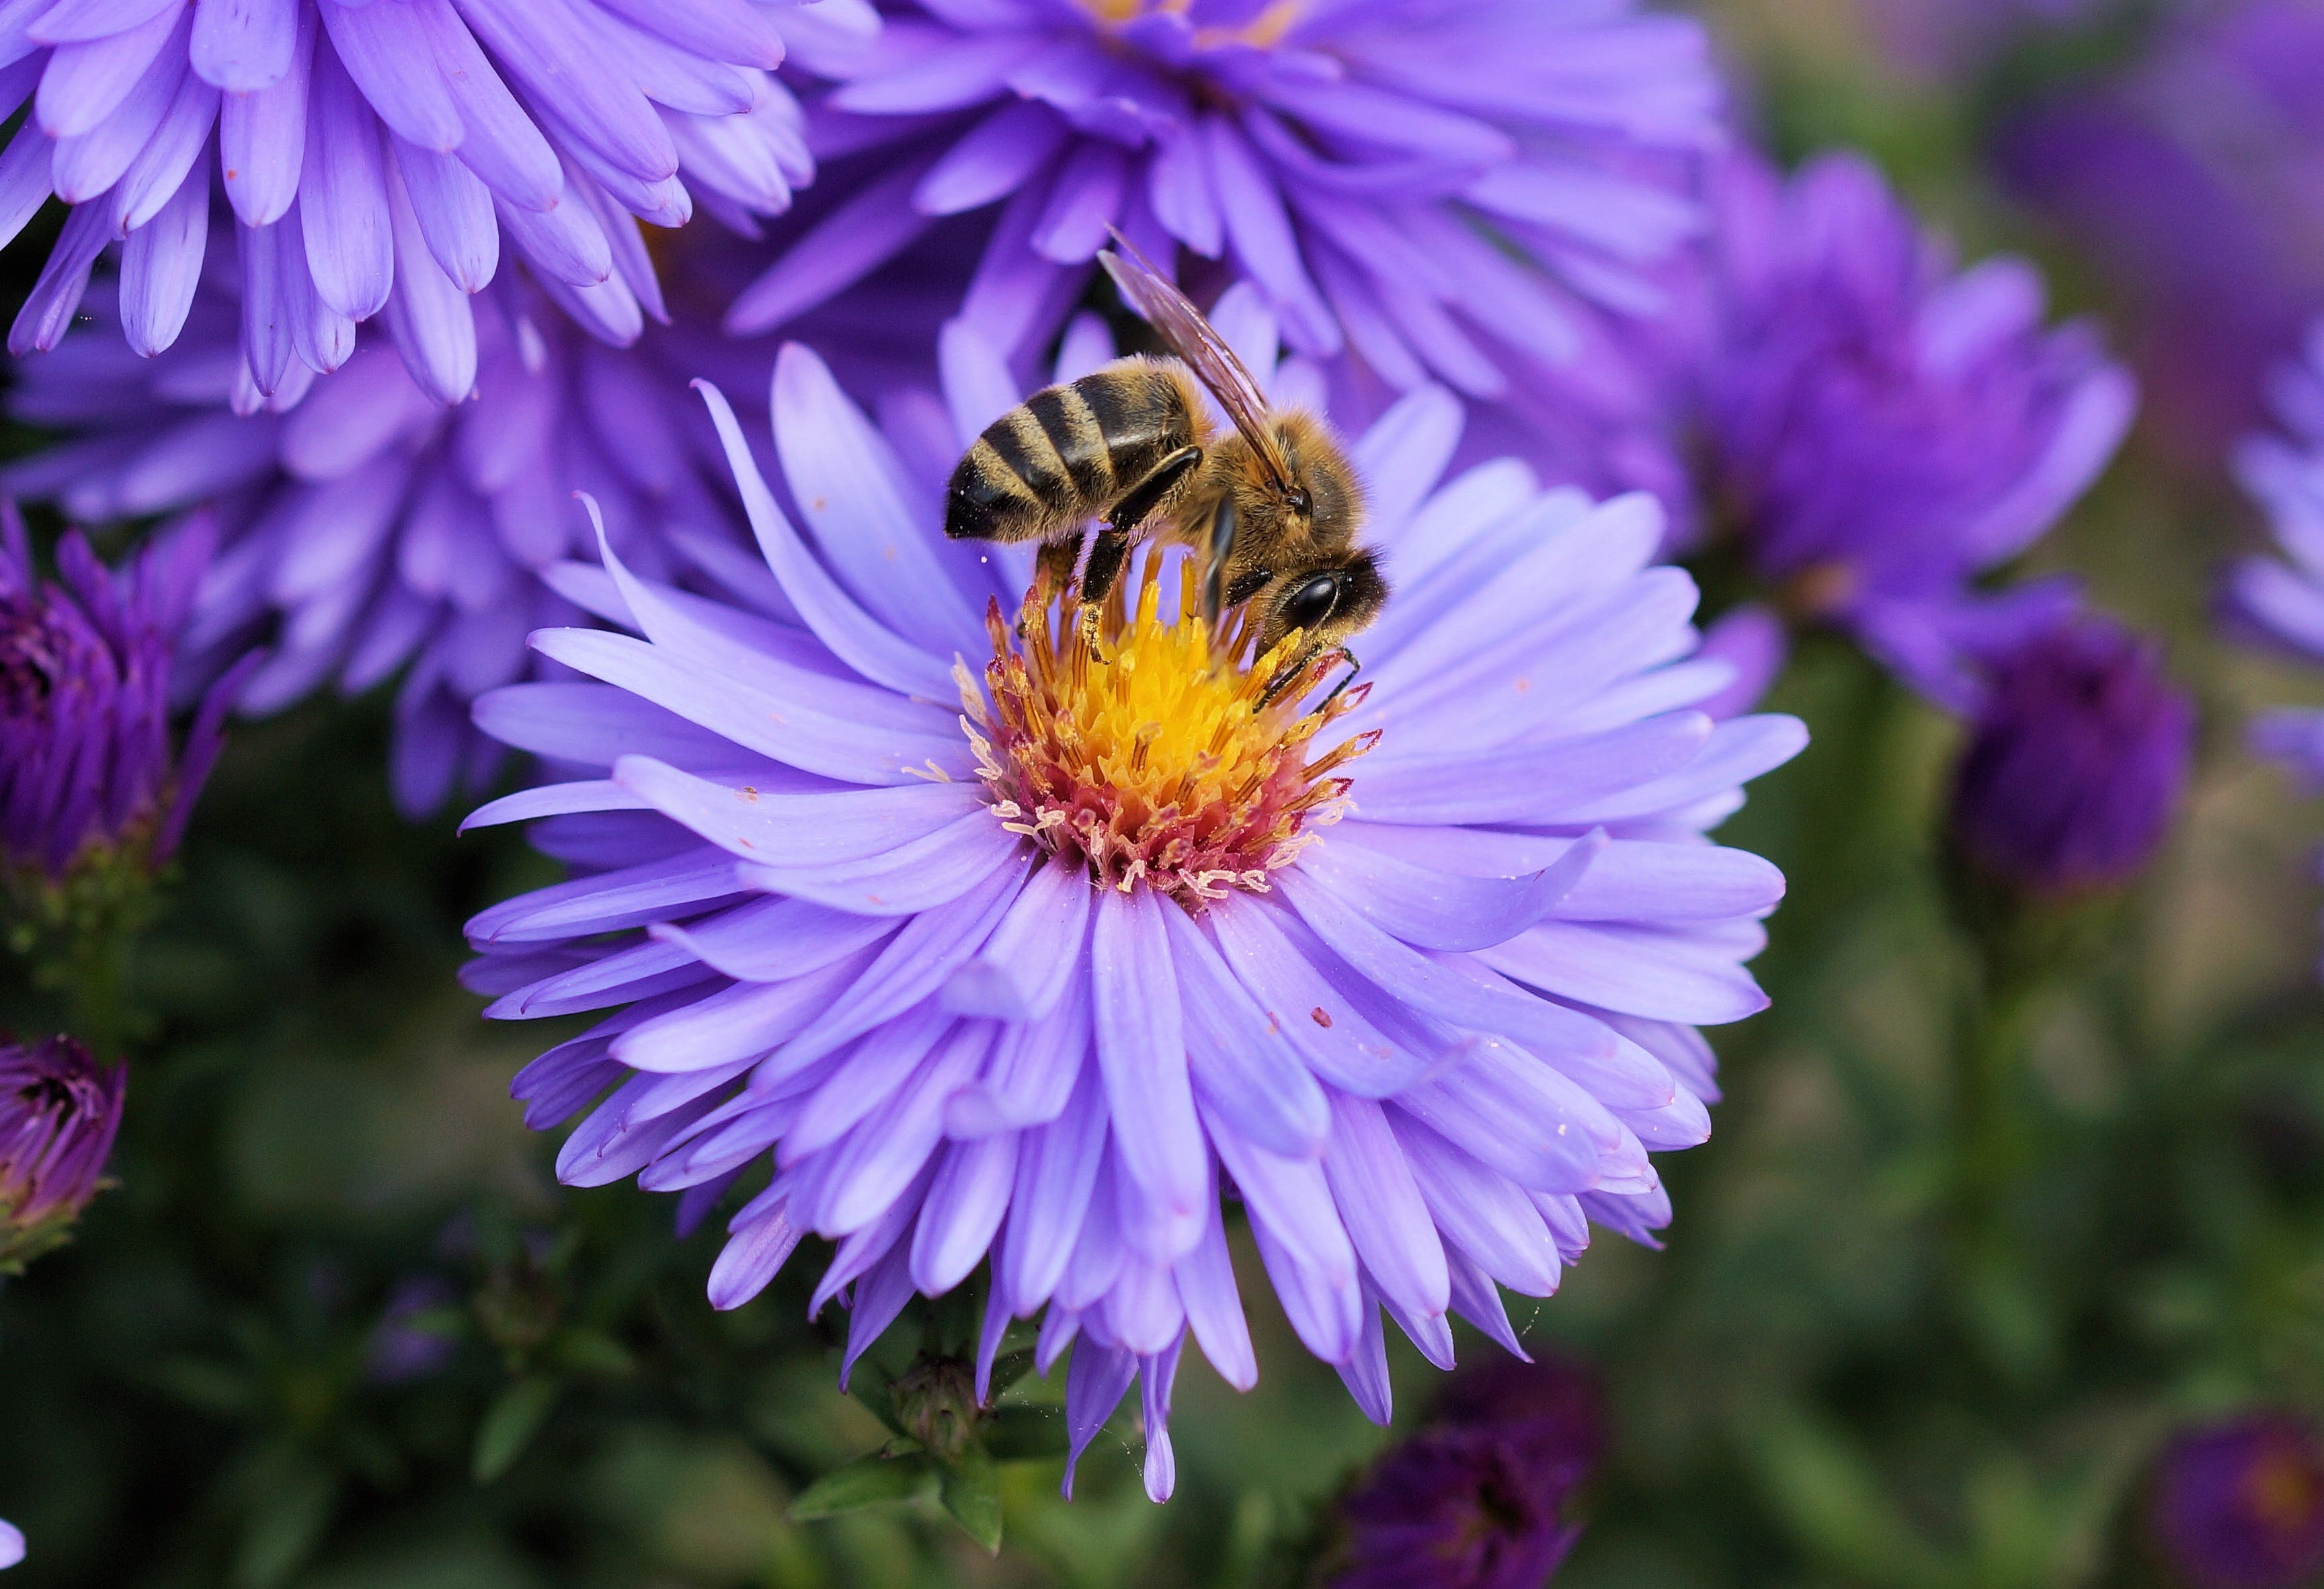 Close Up Photo of Bee on Top of Purple Flower